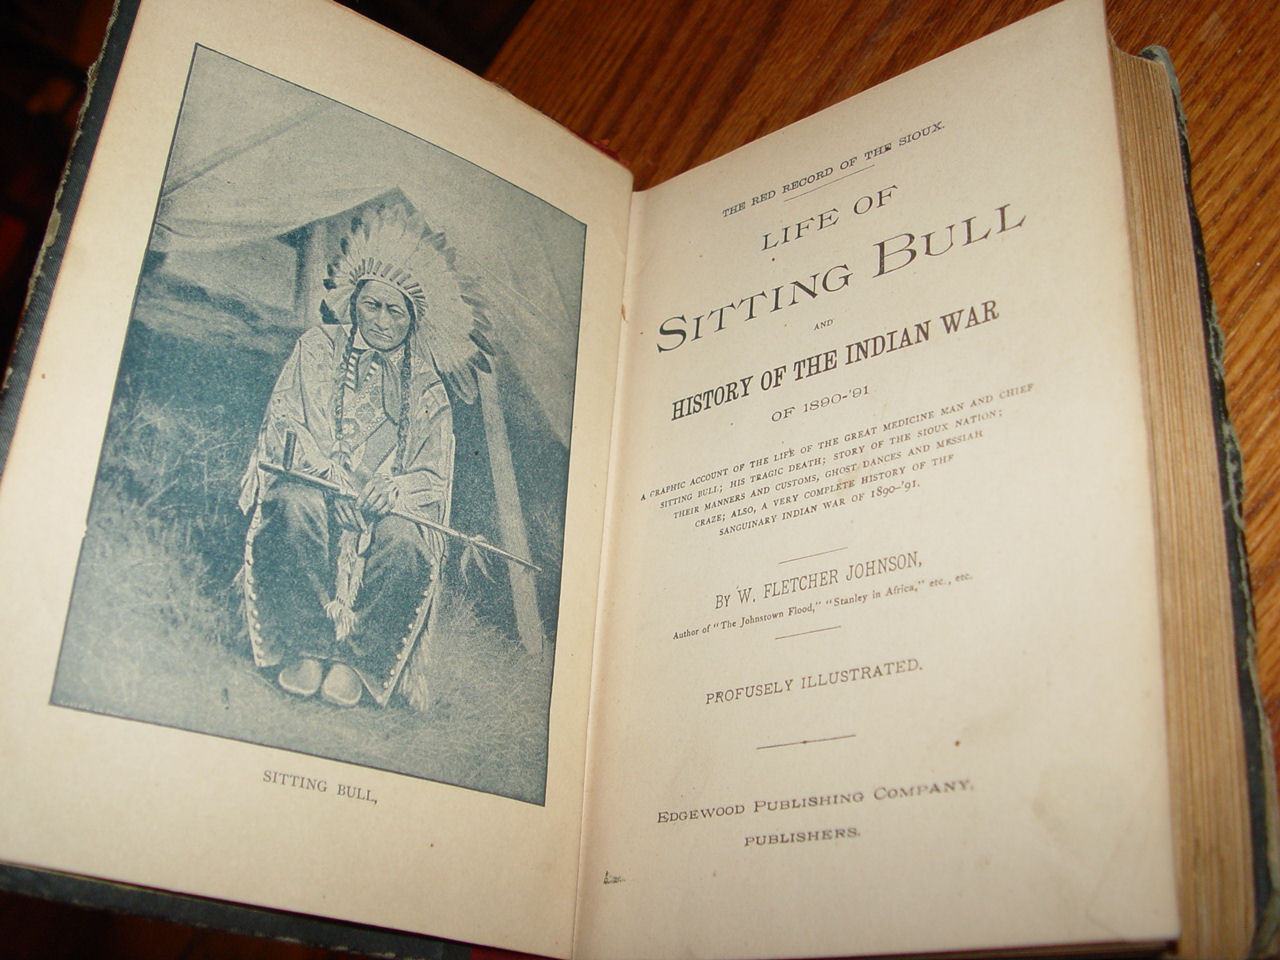 Life of Sitting                                         Bull and History of the Indian                                         War of 1890 - '91 Johnson, W.                                         Fletcher John Croon Bemidji Mn                                         Saloon Owner